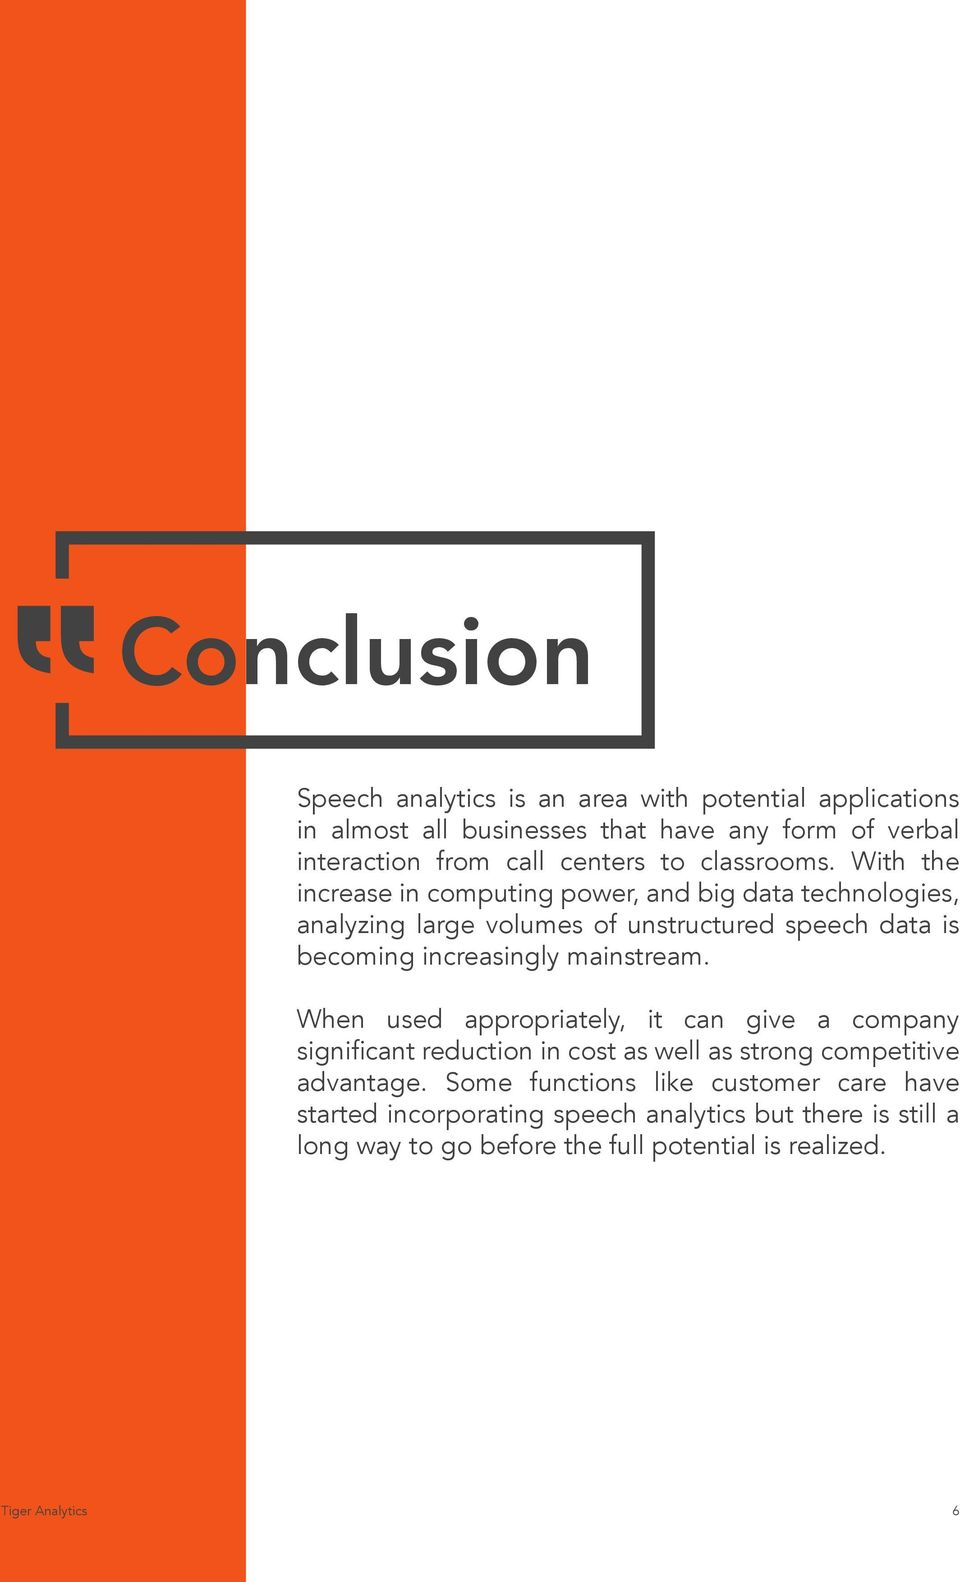 With the increase in computing power, and big data technologies, analyzing large volumes of unstructured speech data is becoming increasingly